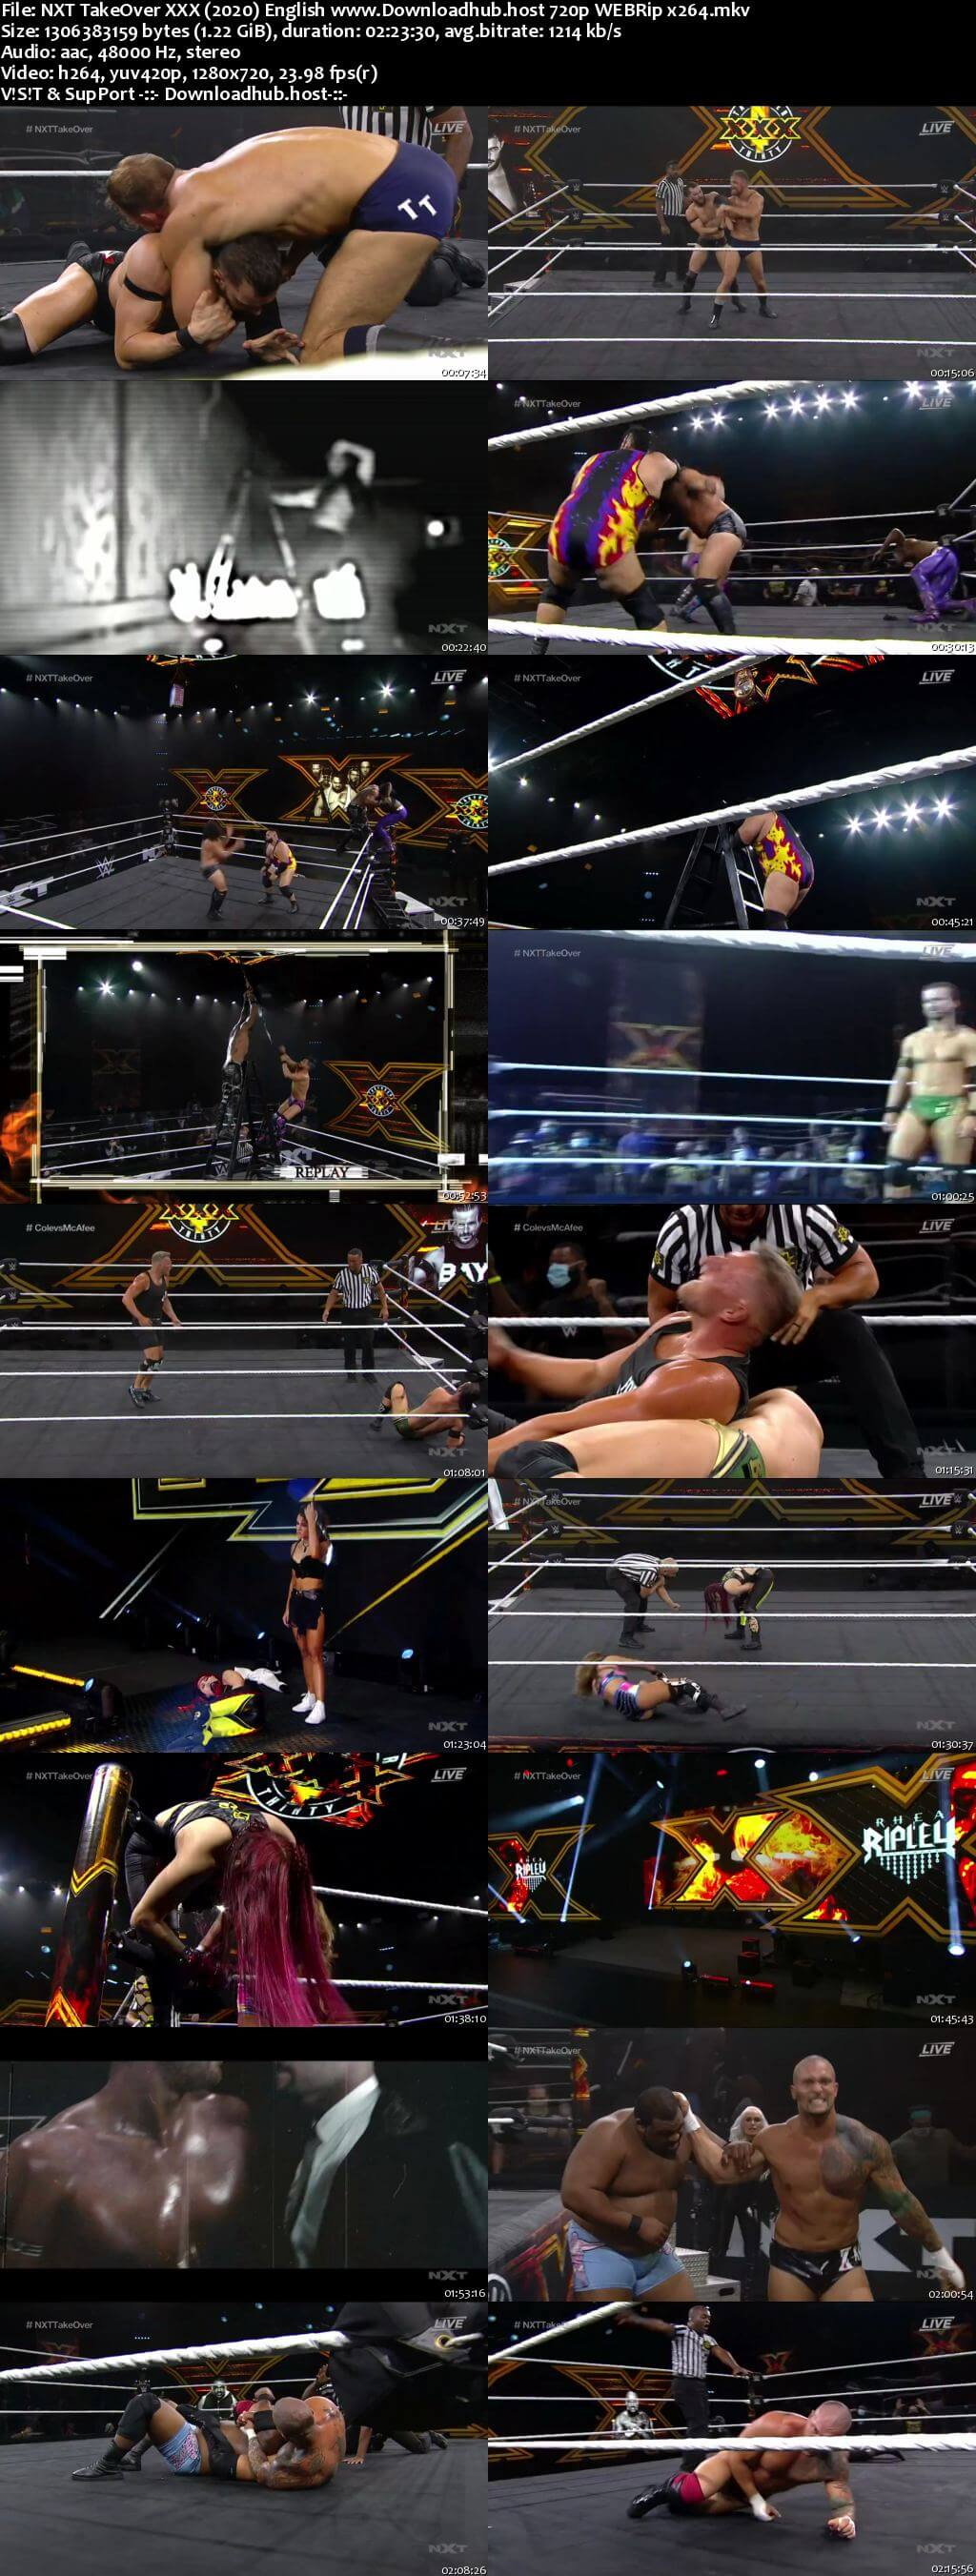 WWE NXT TakeOver XXX 22nd August 2020 720p 600MB PPV WEBRip 480p